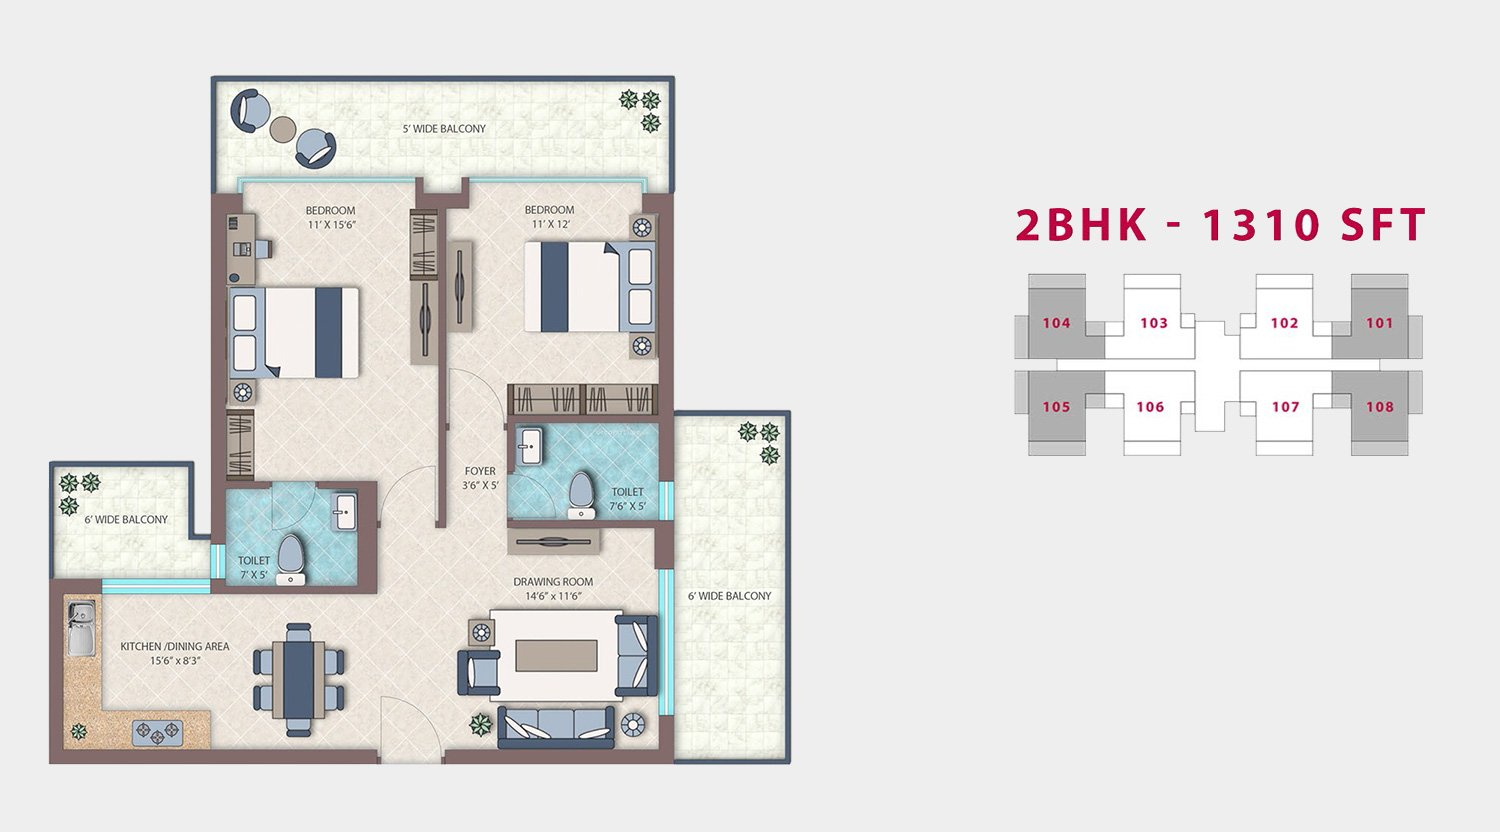 Emerald Heights 2BHK 1310sft Floor Plan